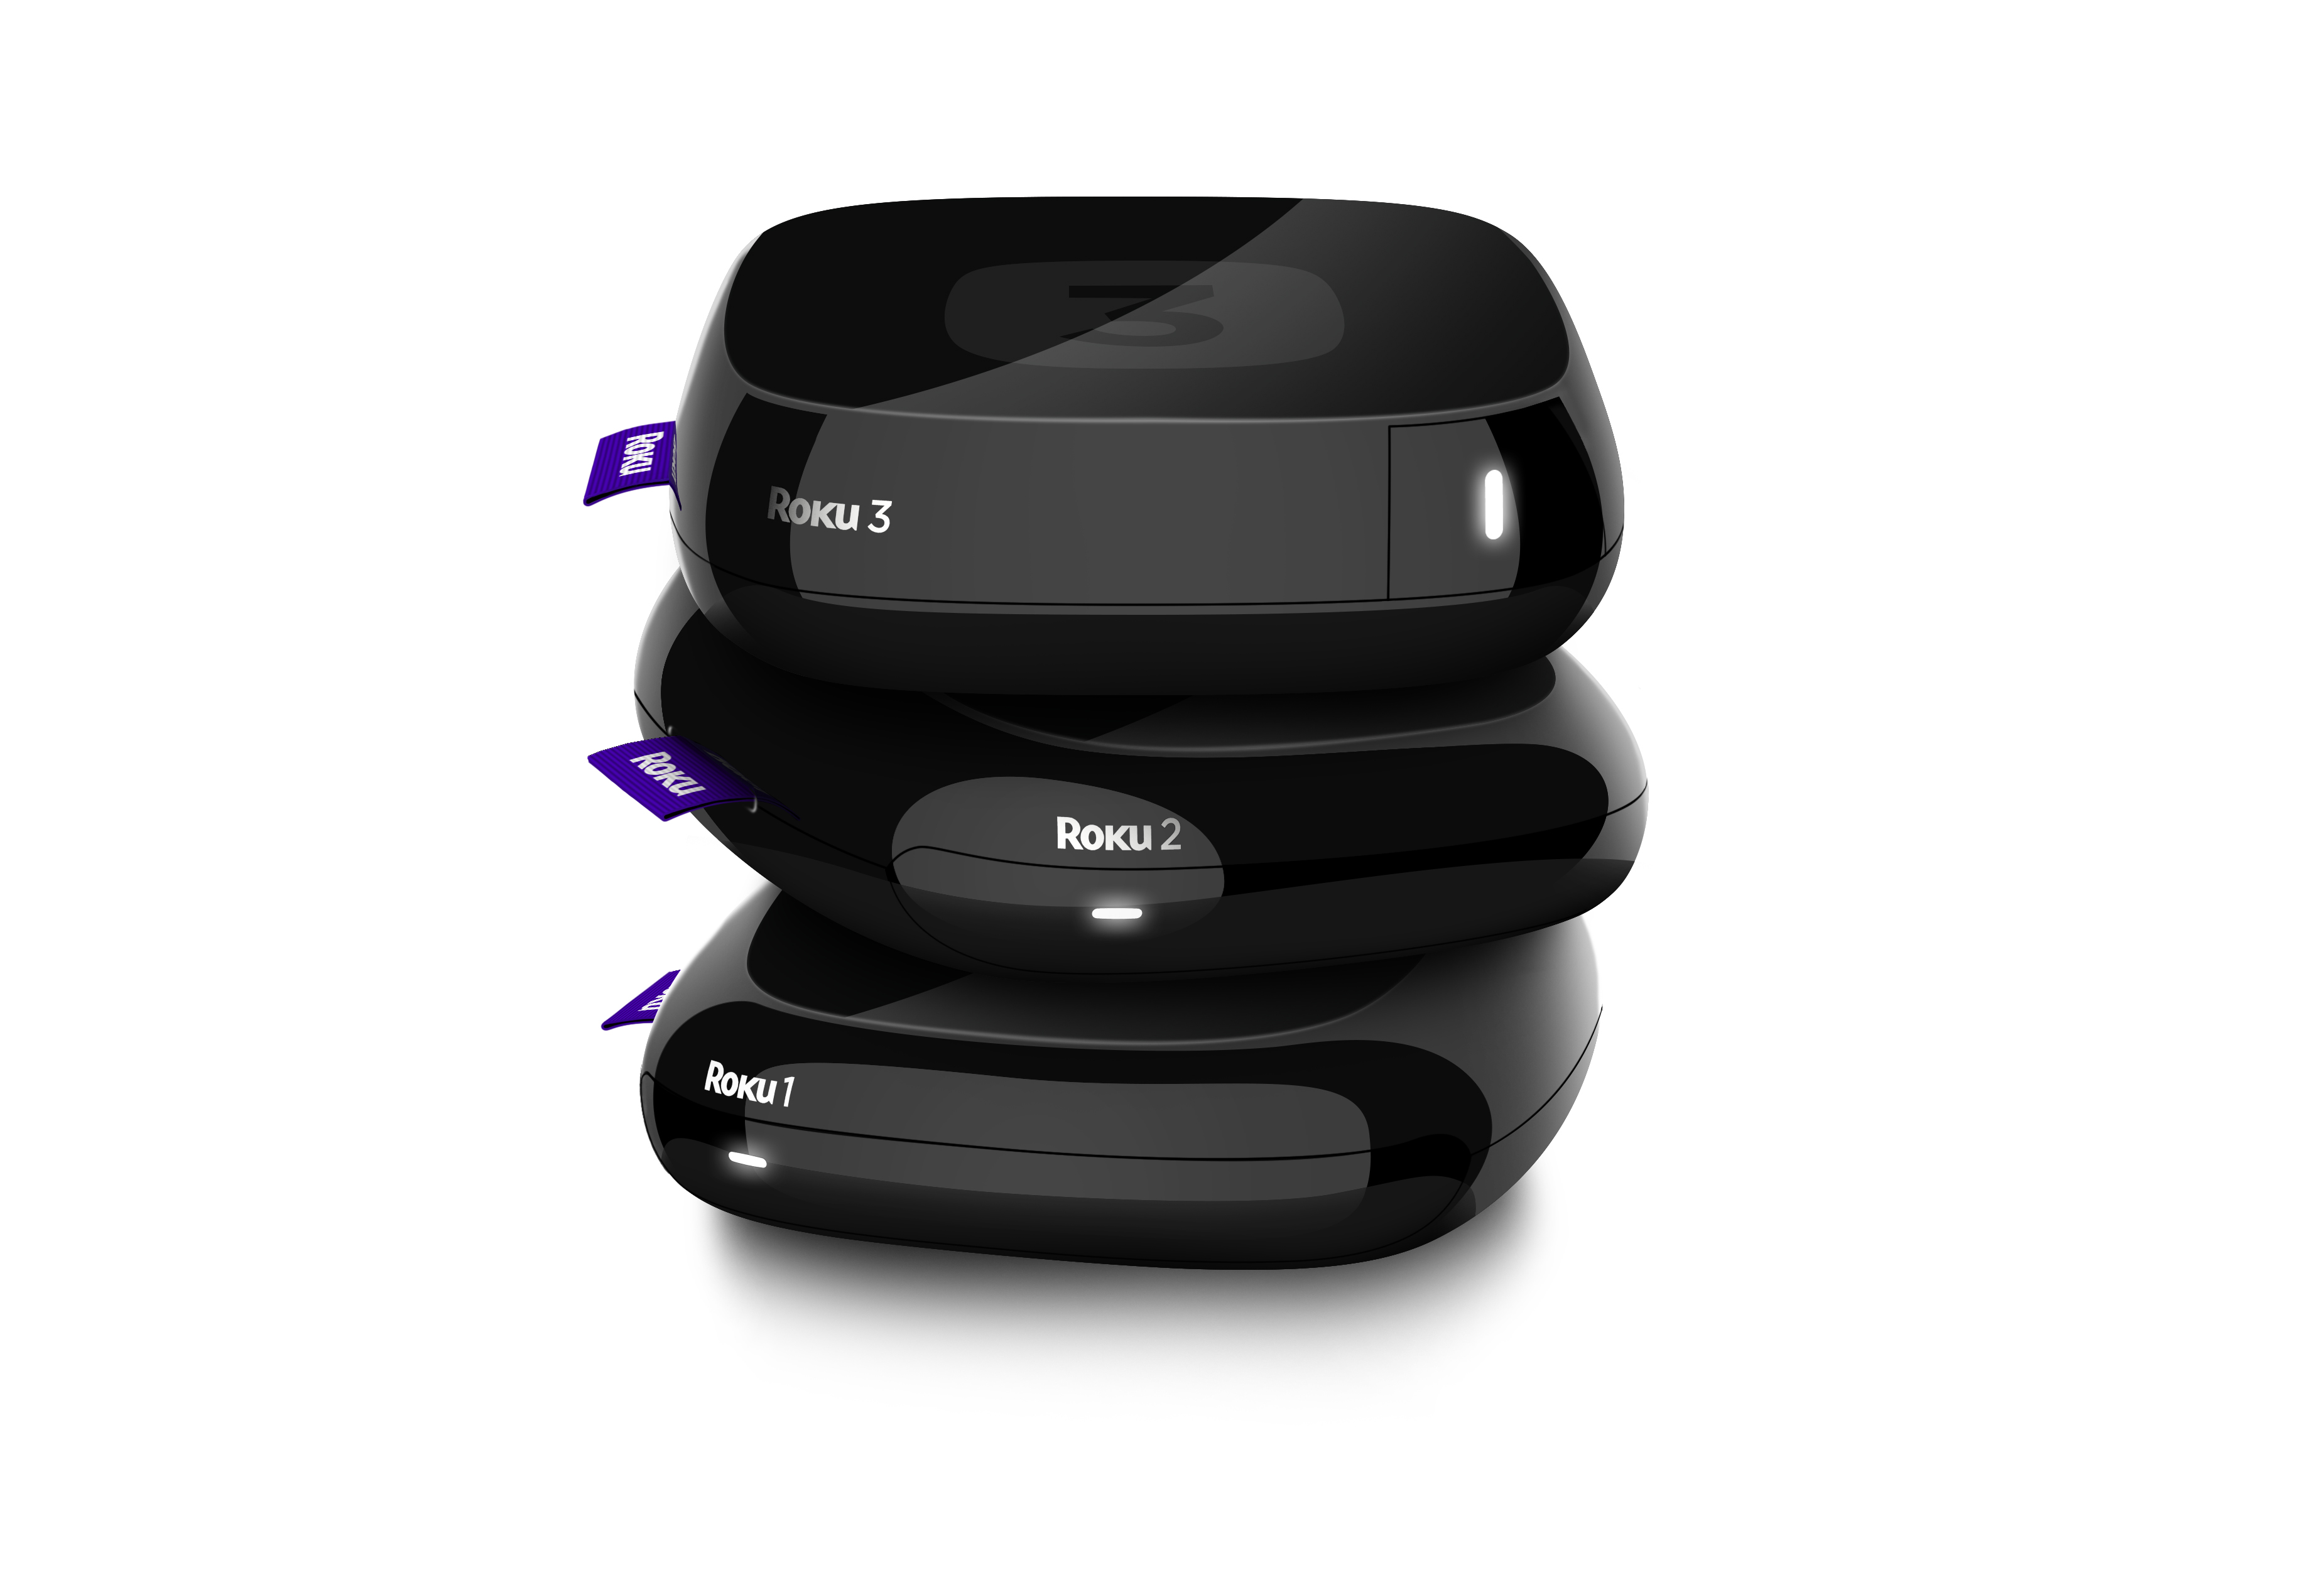 Group Tower 123onlyUK HR RGB Roku launches new TV streaming boxes and brings Roku 3 to the UK and Ireland